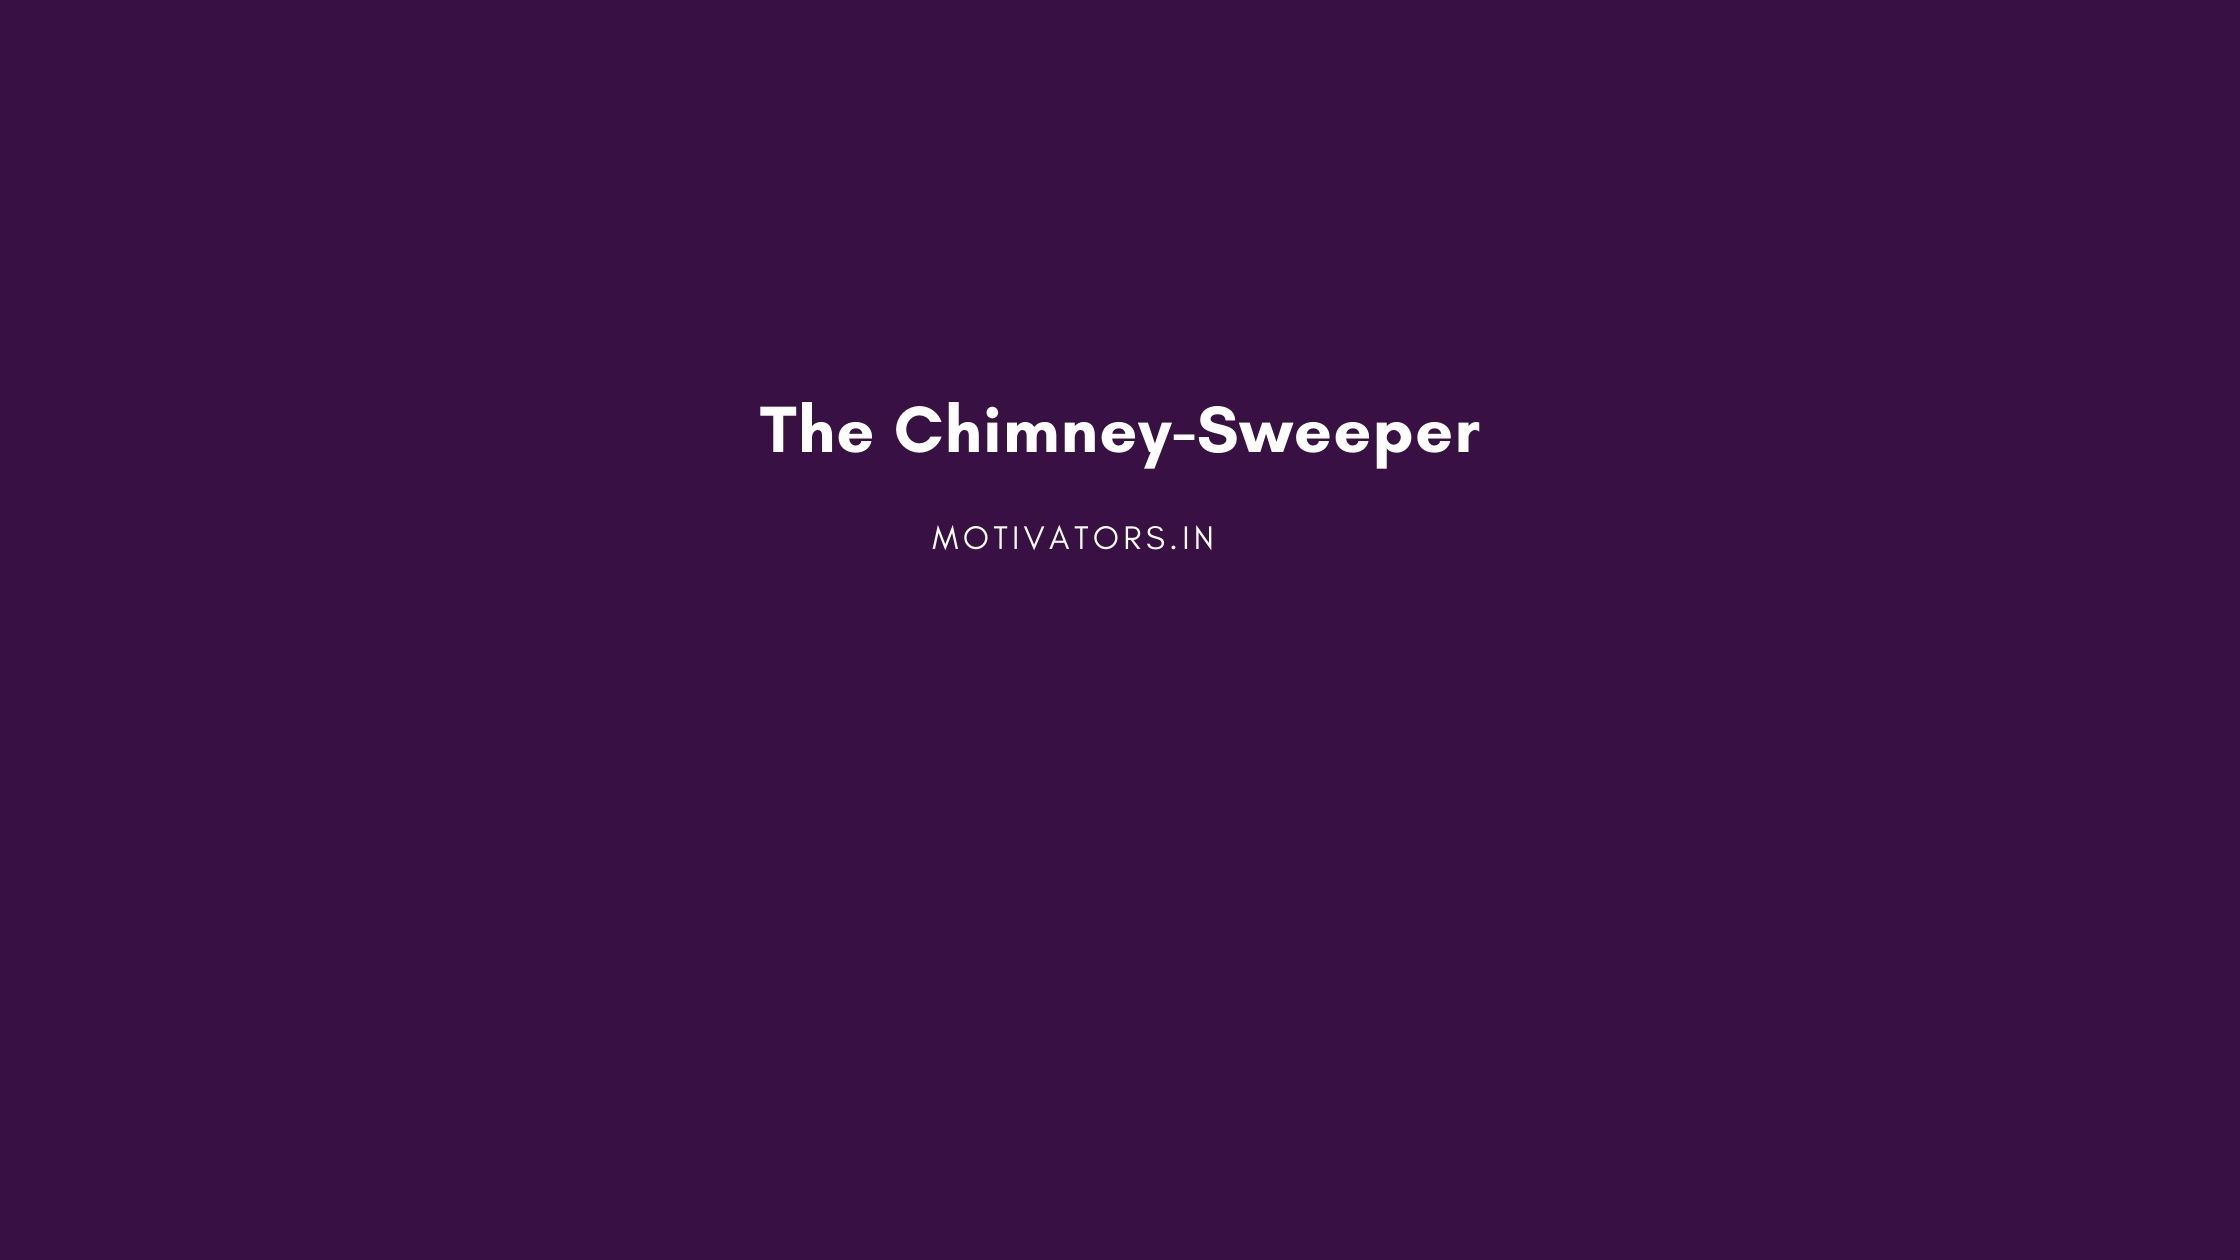 The Chimney-Sweeper